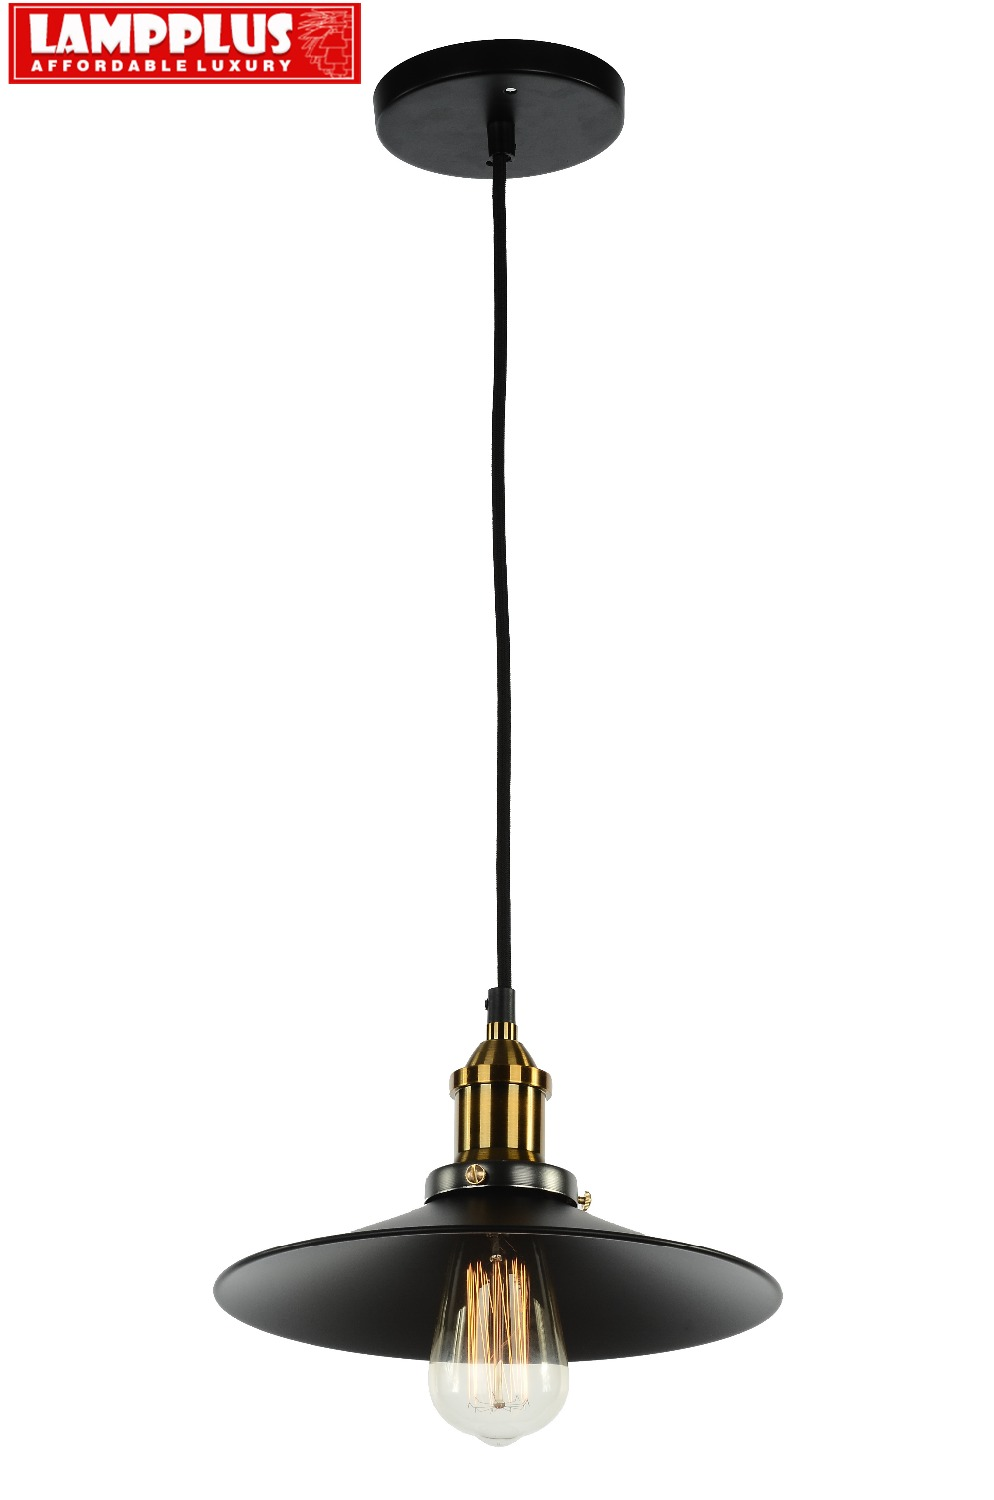 Lampplus Nordic Simple Vintage Loft Industrial Brass Black Pendant light Droplight Ceiling lamp for bedroom living room study